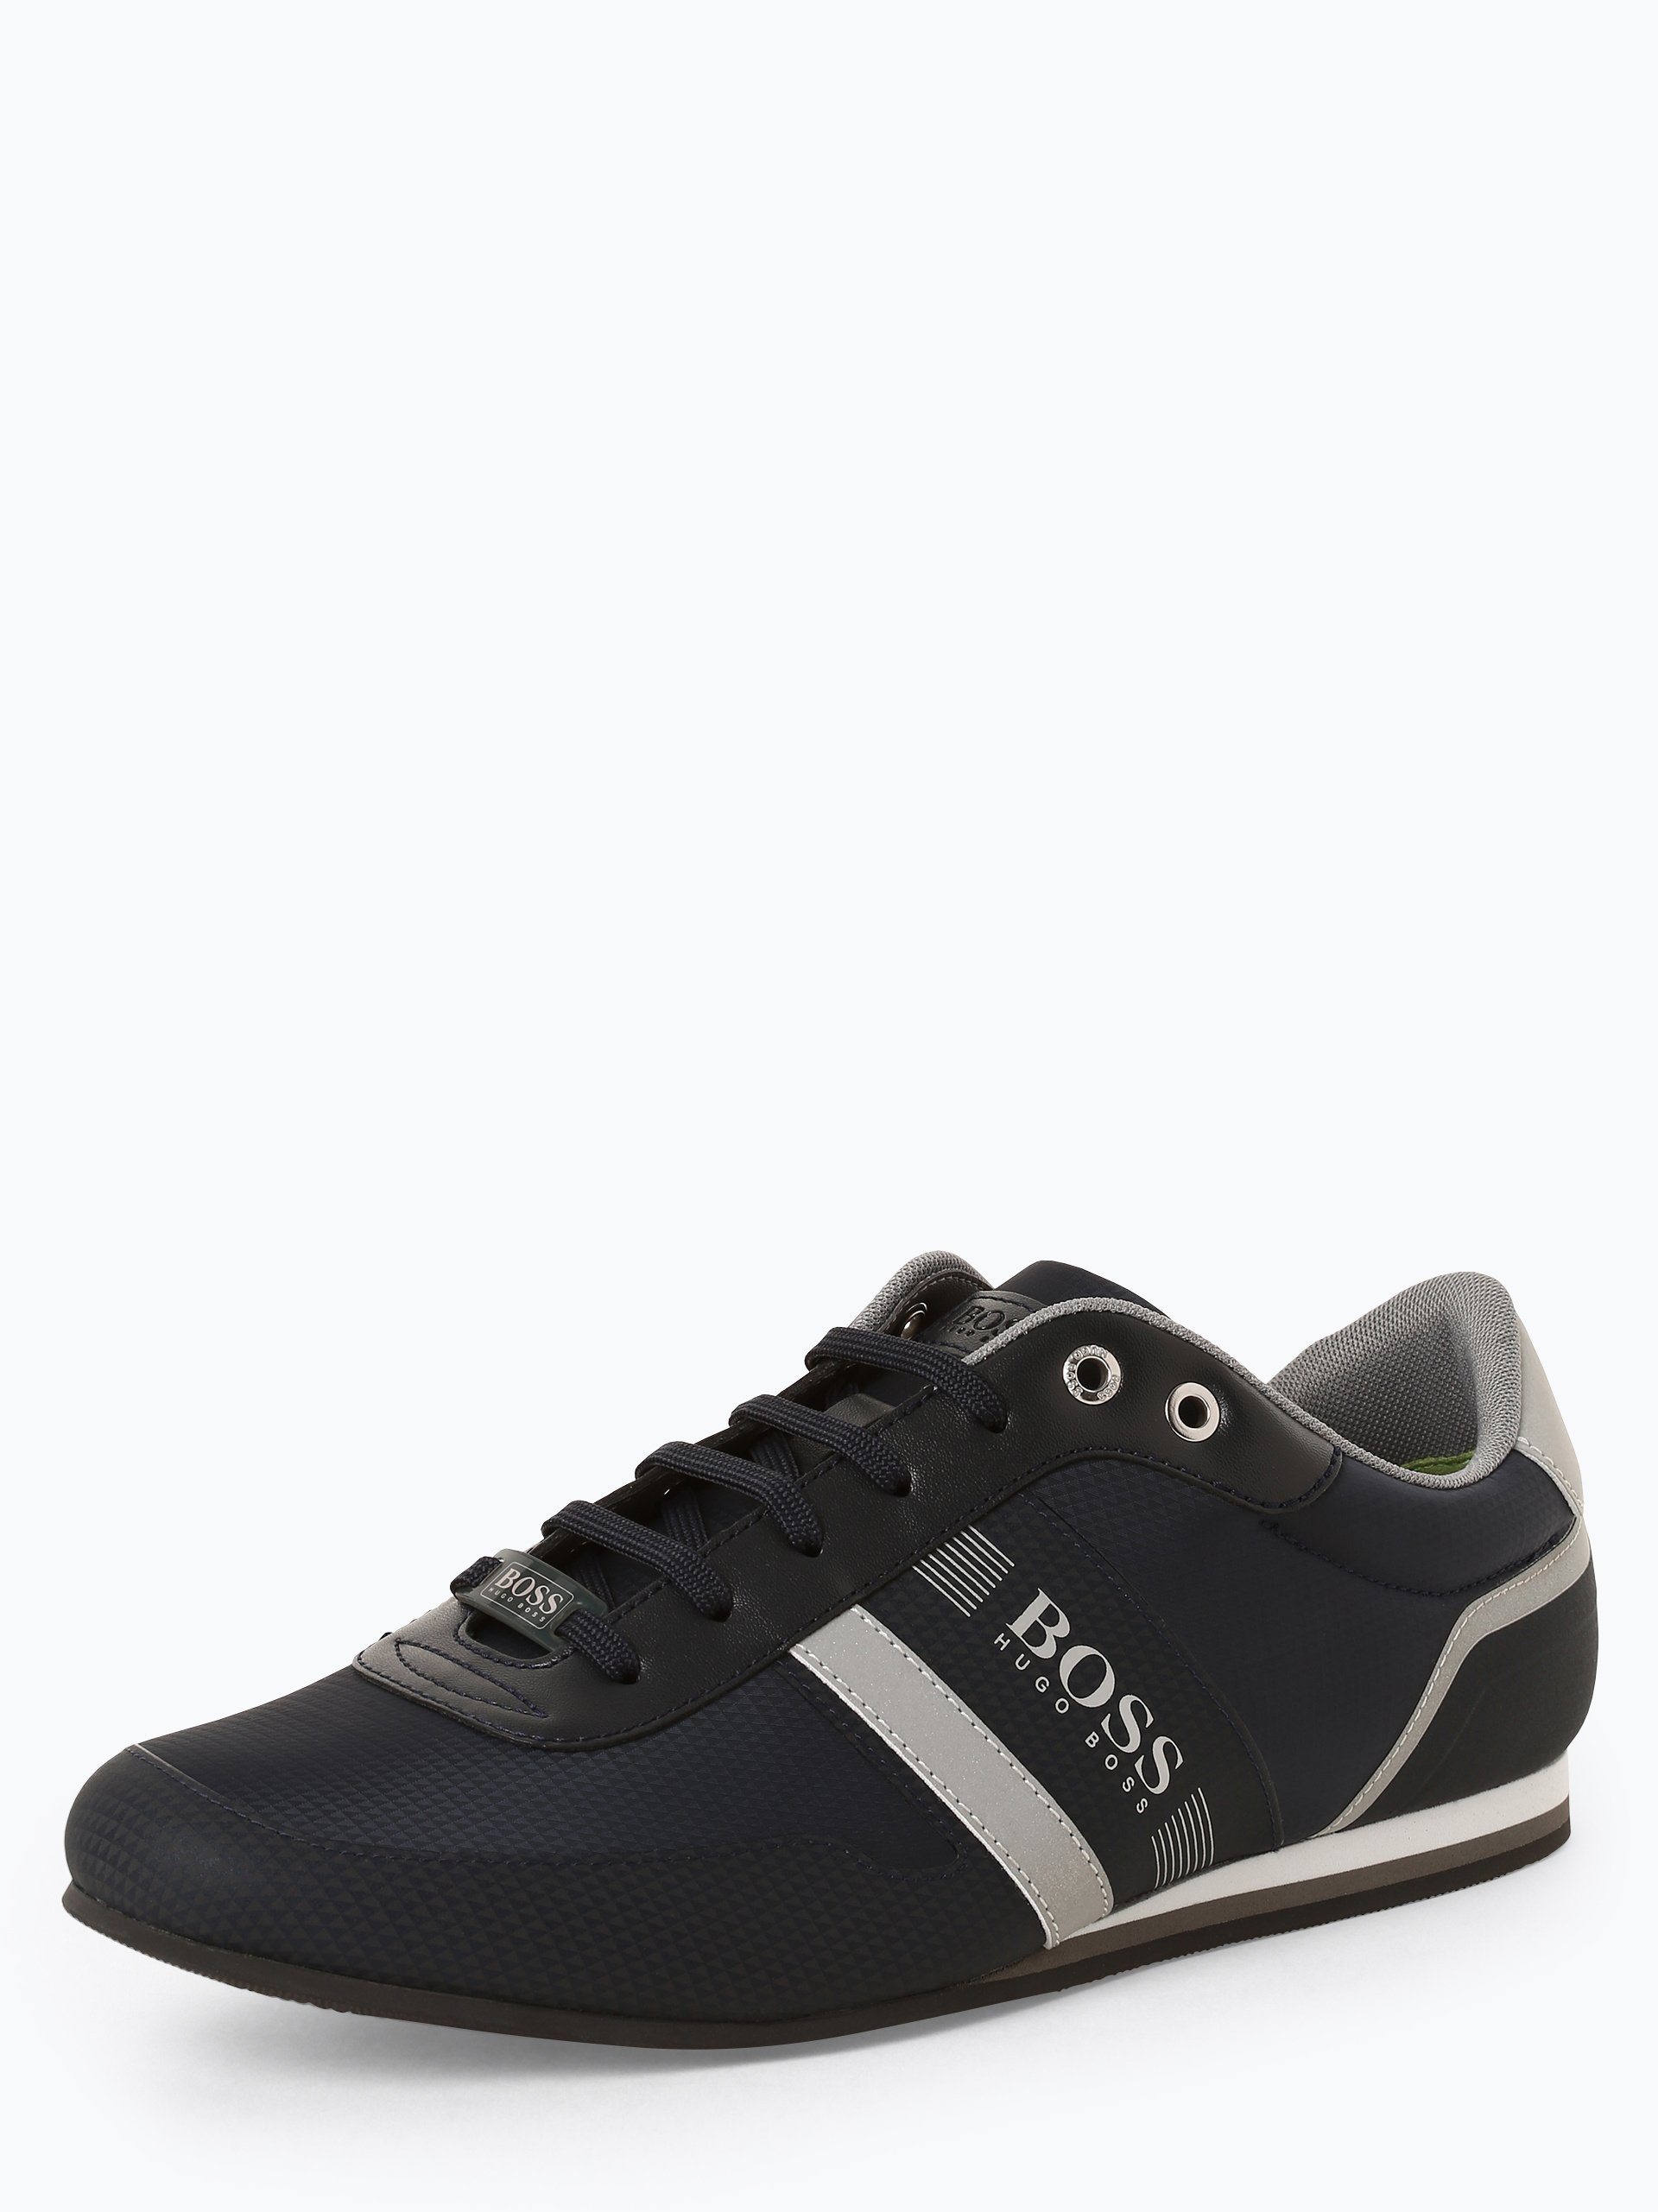 BOSS Athleisure Herren Sneaker - Lighter_Lowp_nyth